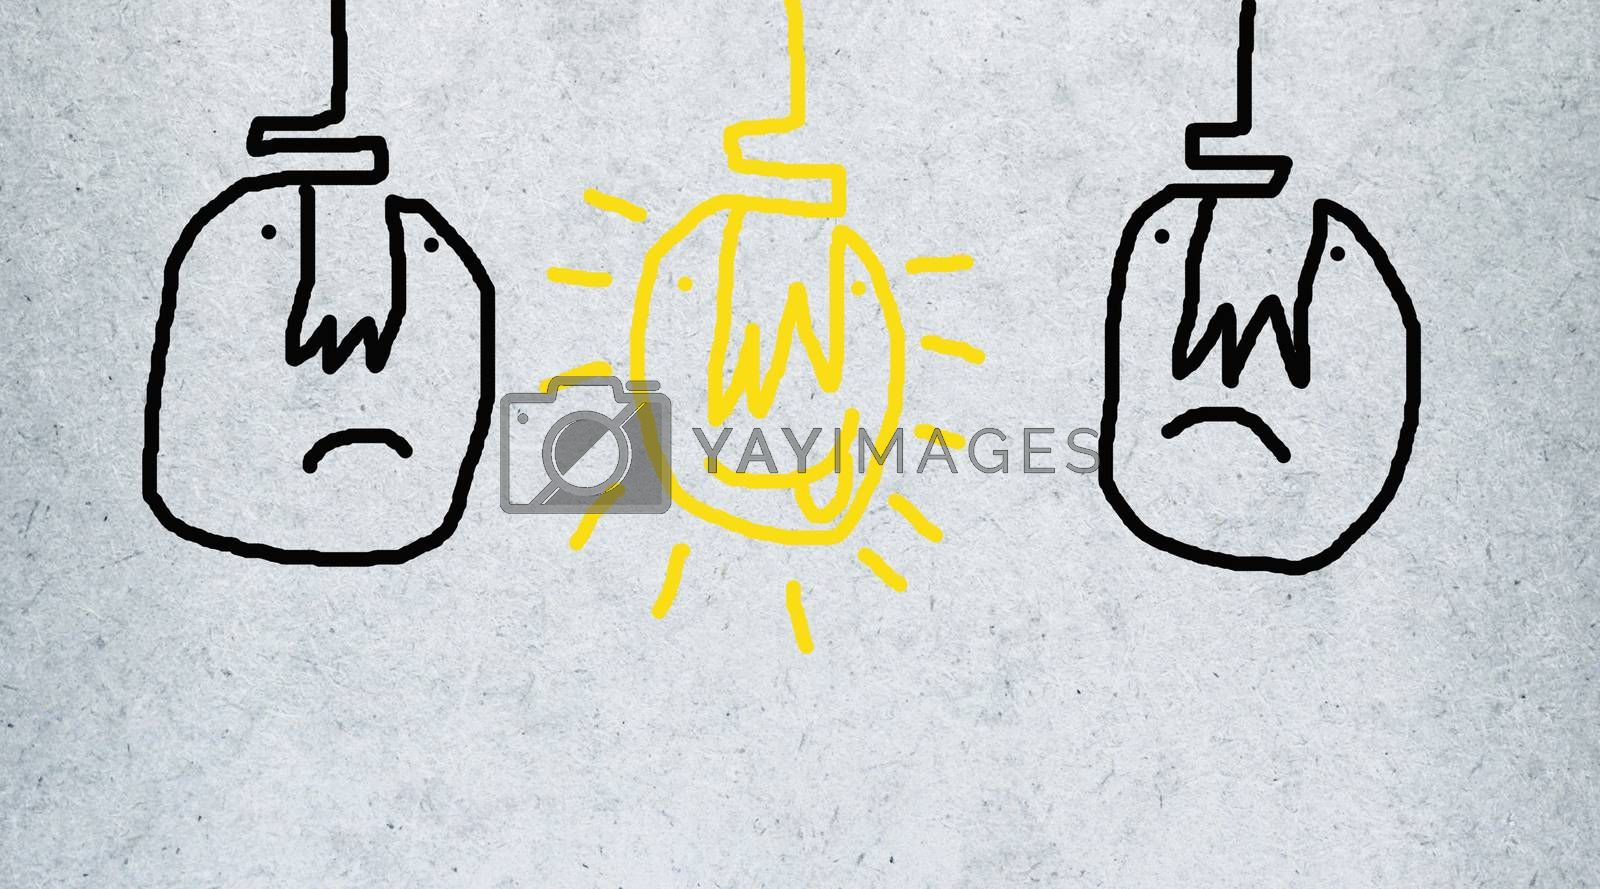 Easy brush paint on gray background. Cute light bulb idea. Happy by Bowonpat